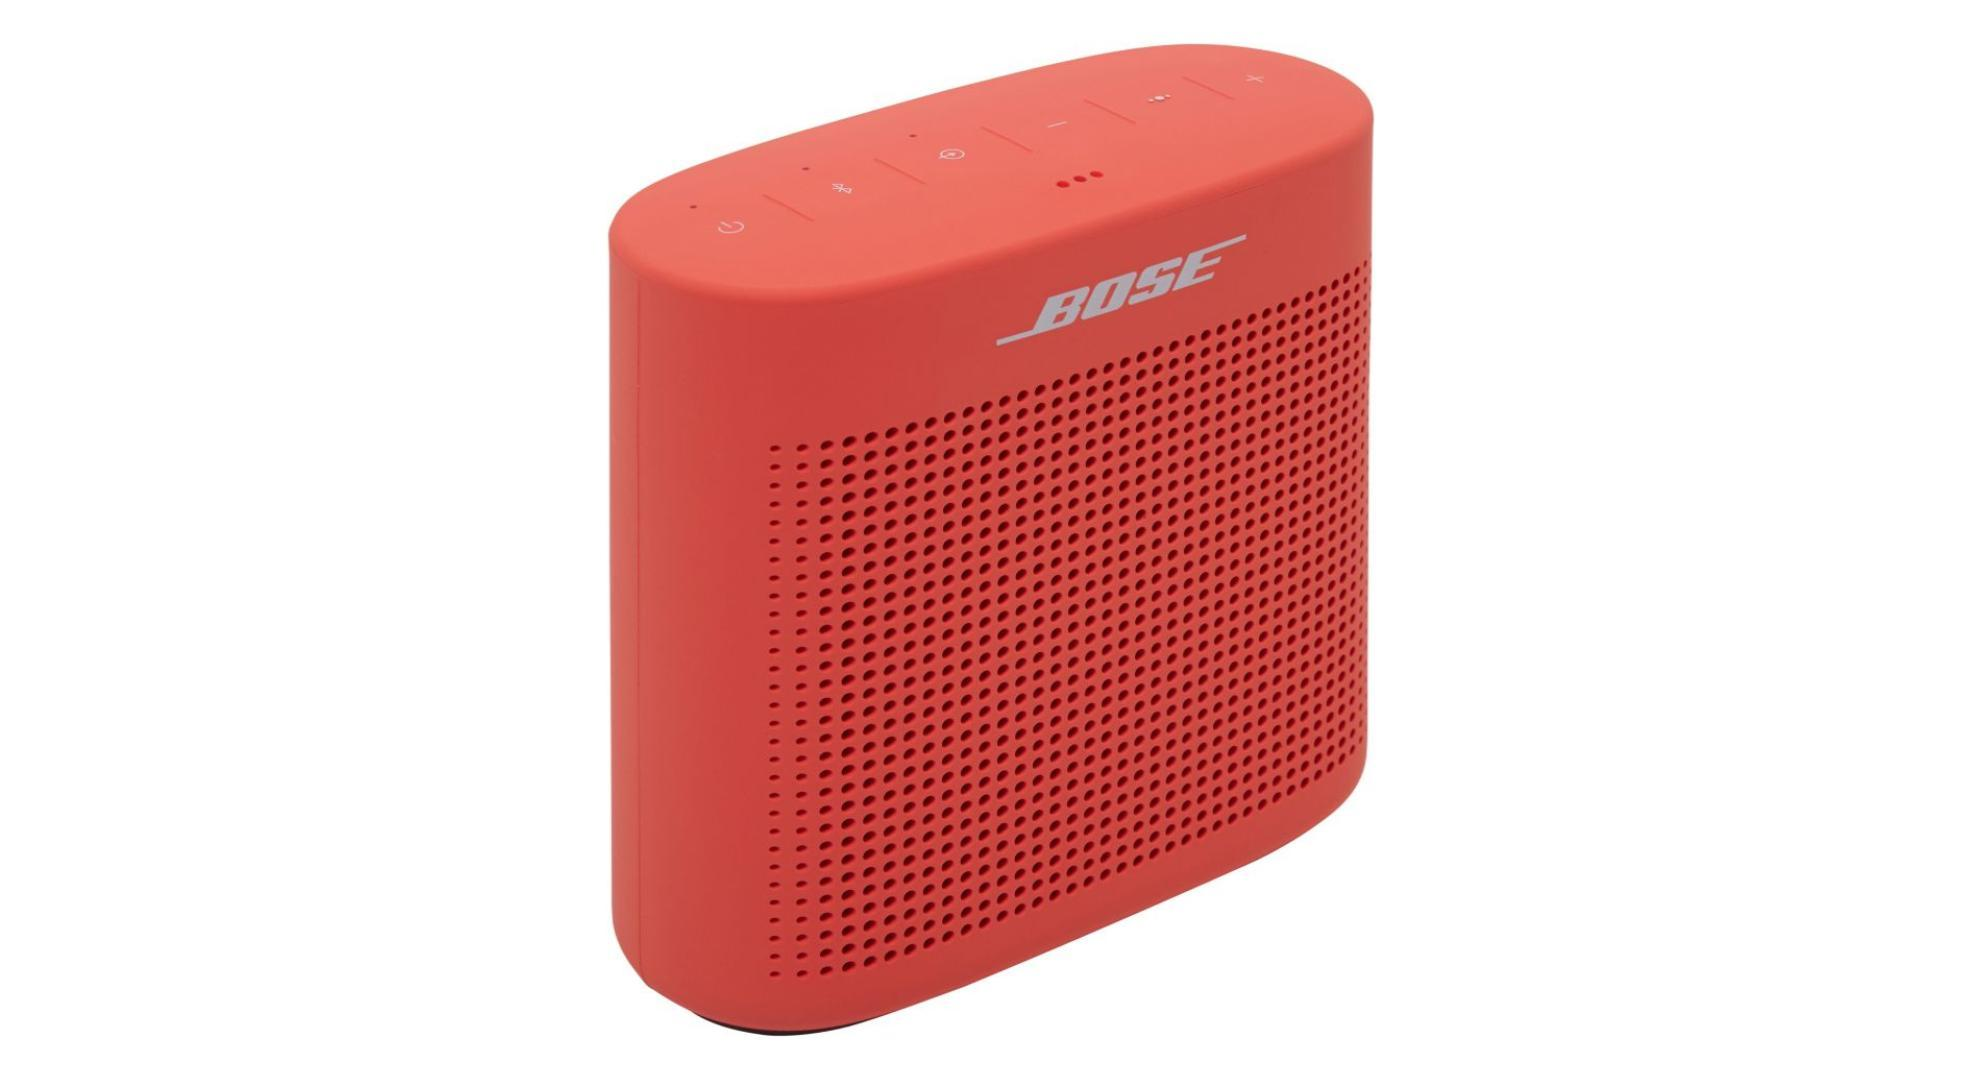 🔥 French Days 2019 : l'enceinte Bose Soundlink Color II est disponible à 99 euros